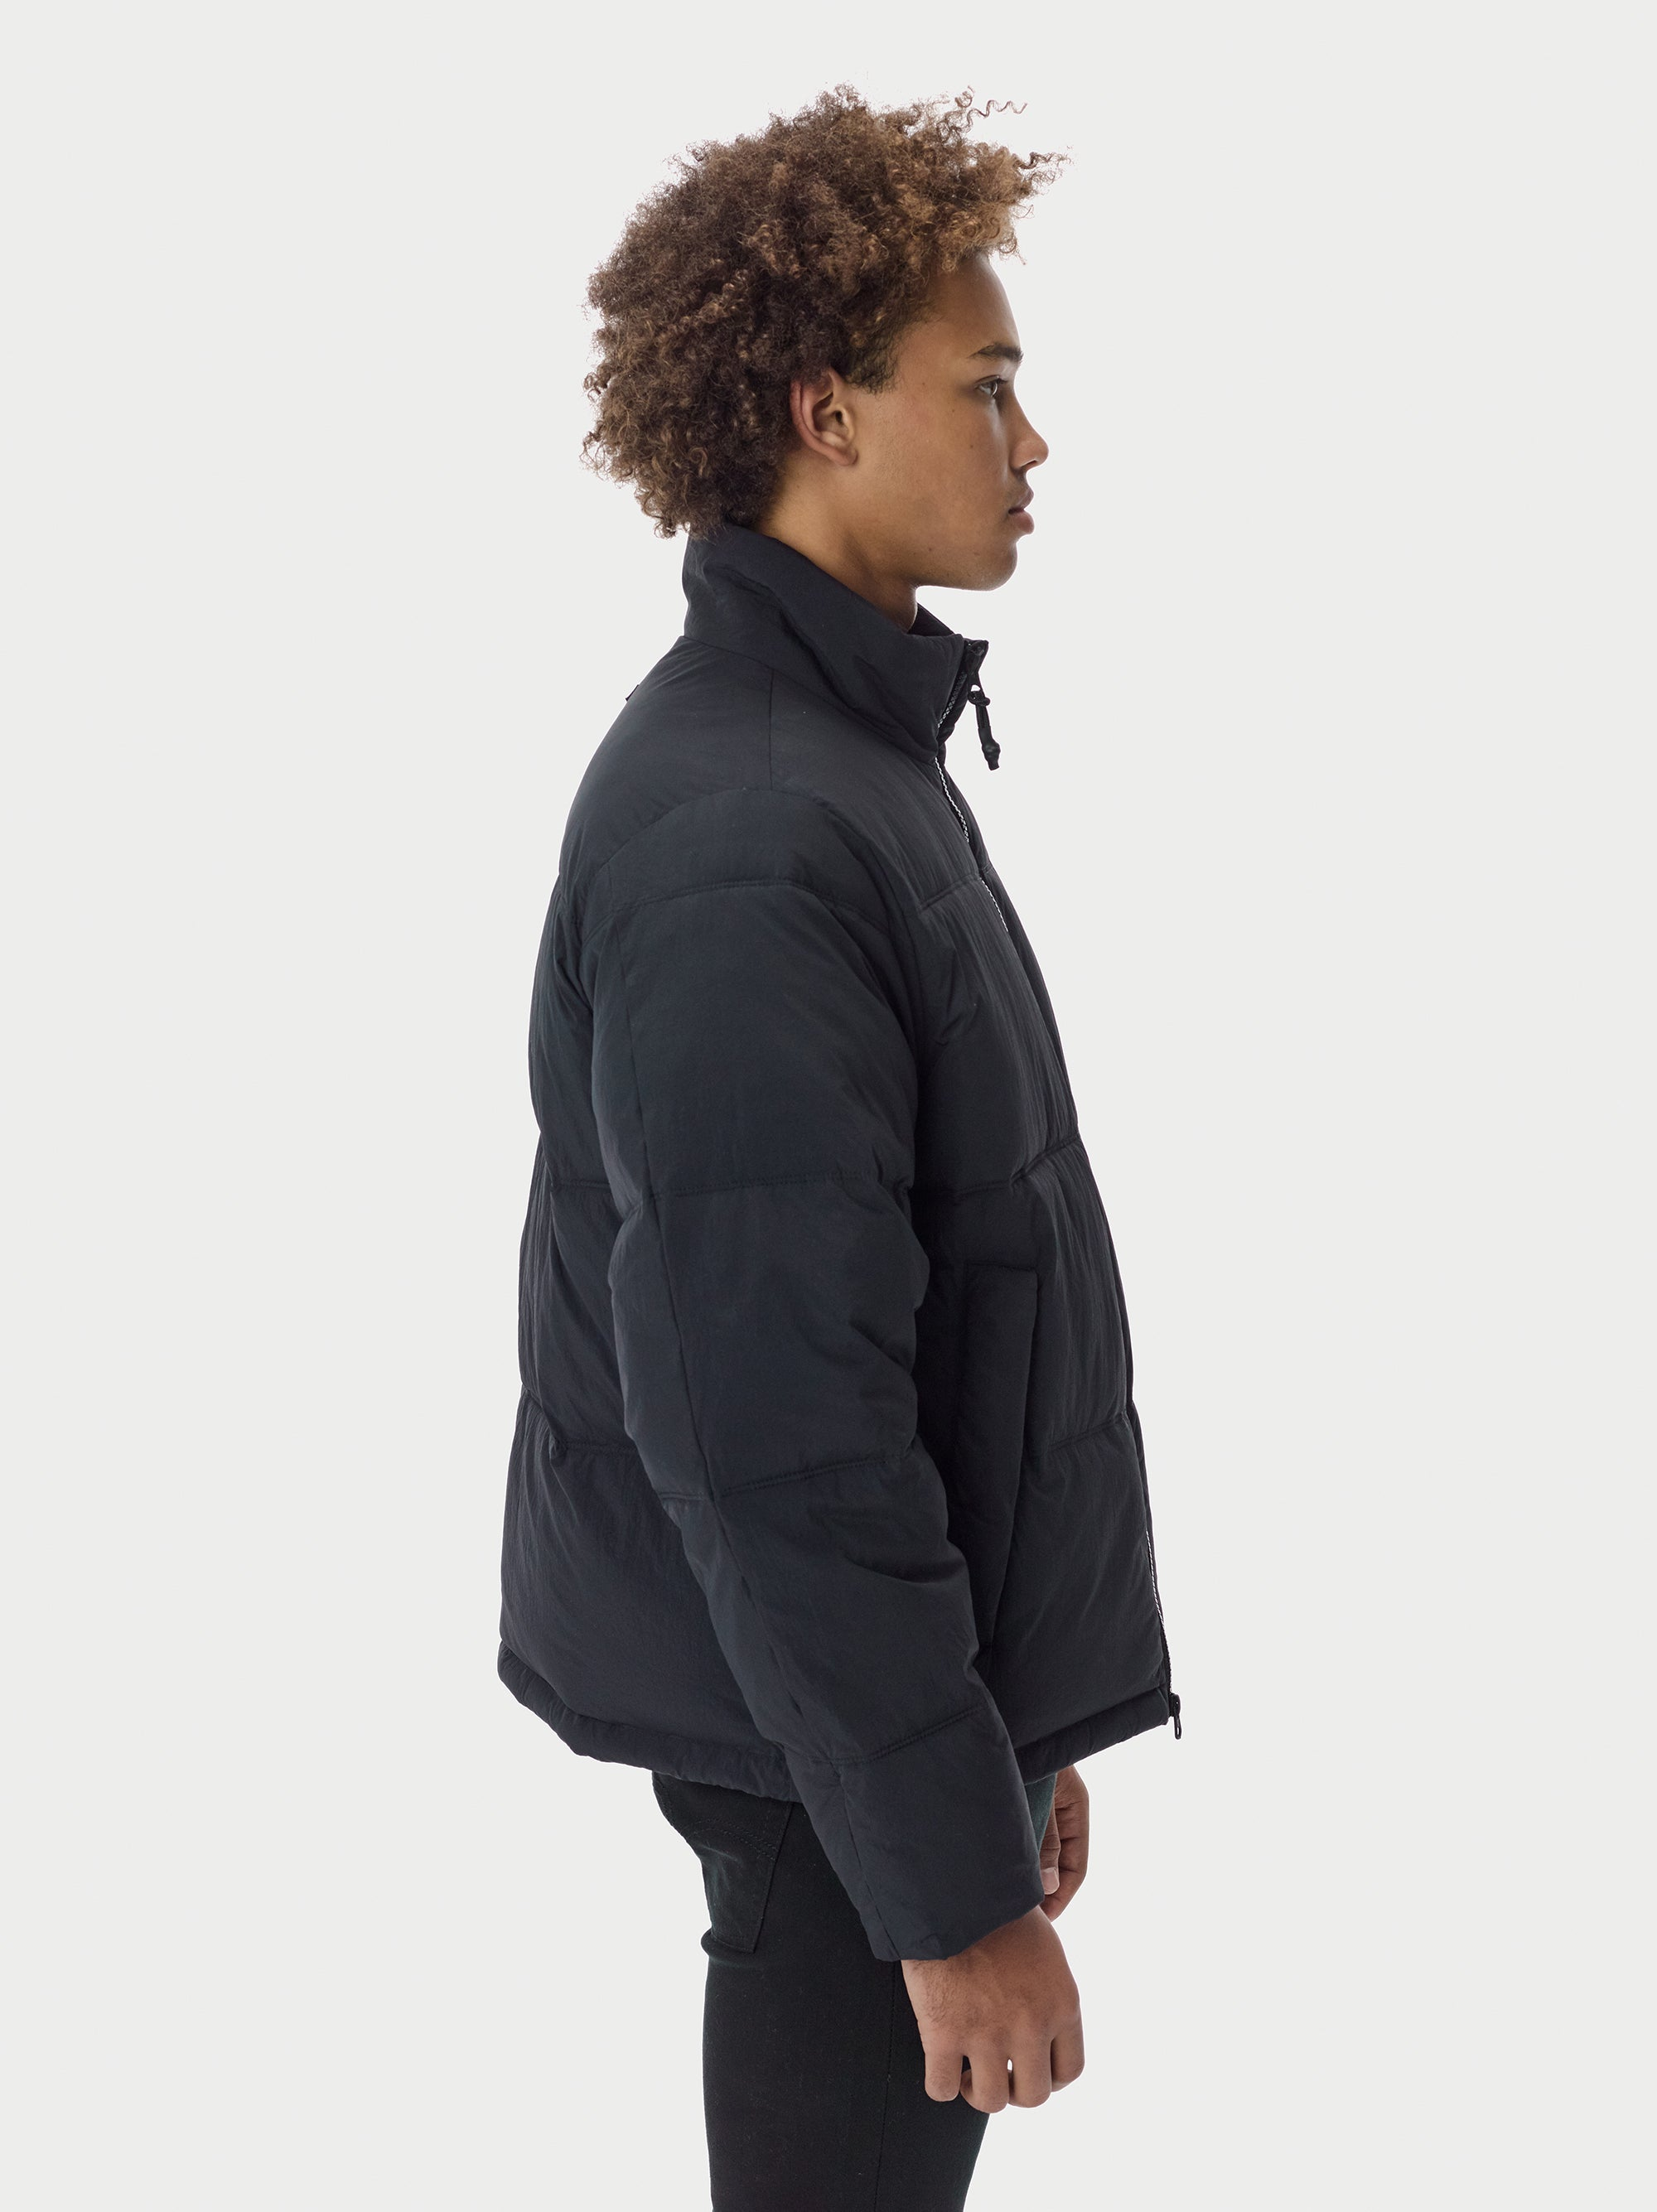 Puffer Puffer Coat - Black [bomber_Vandal], [The Very Warm], [The Very Warm]